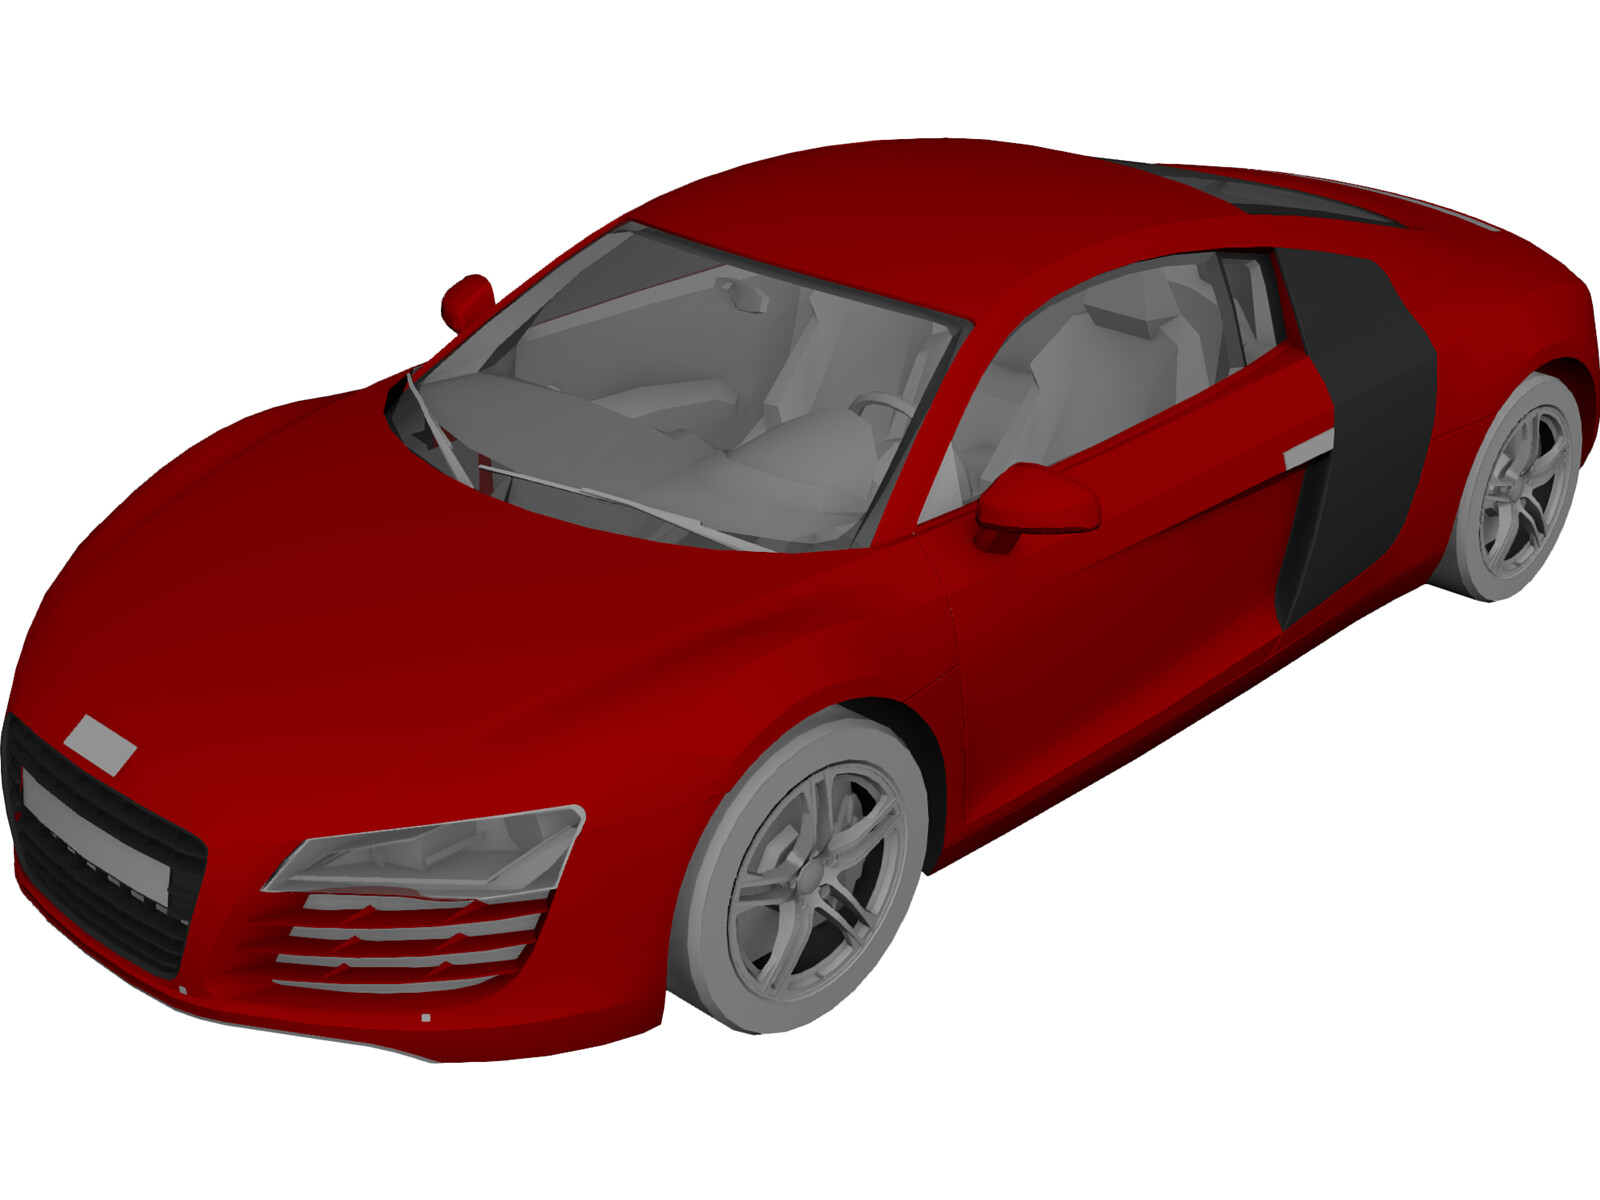 Audi R D Model D CAD Browser - Audi car 3d